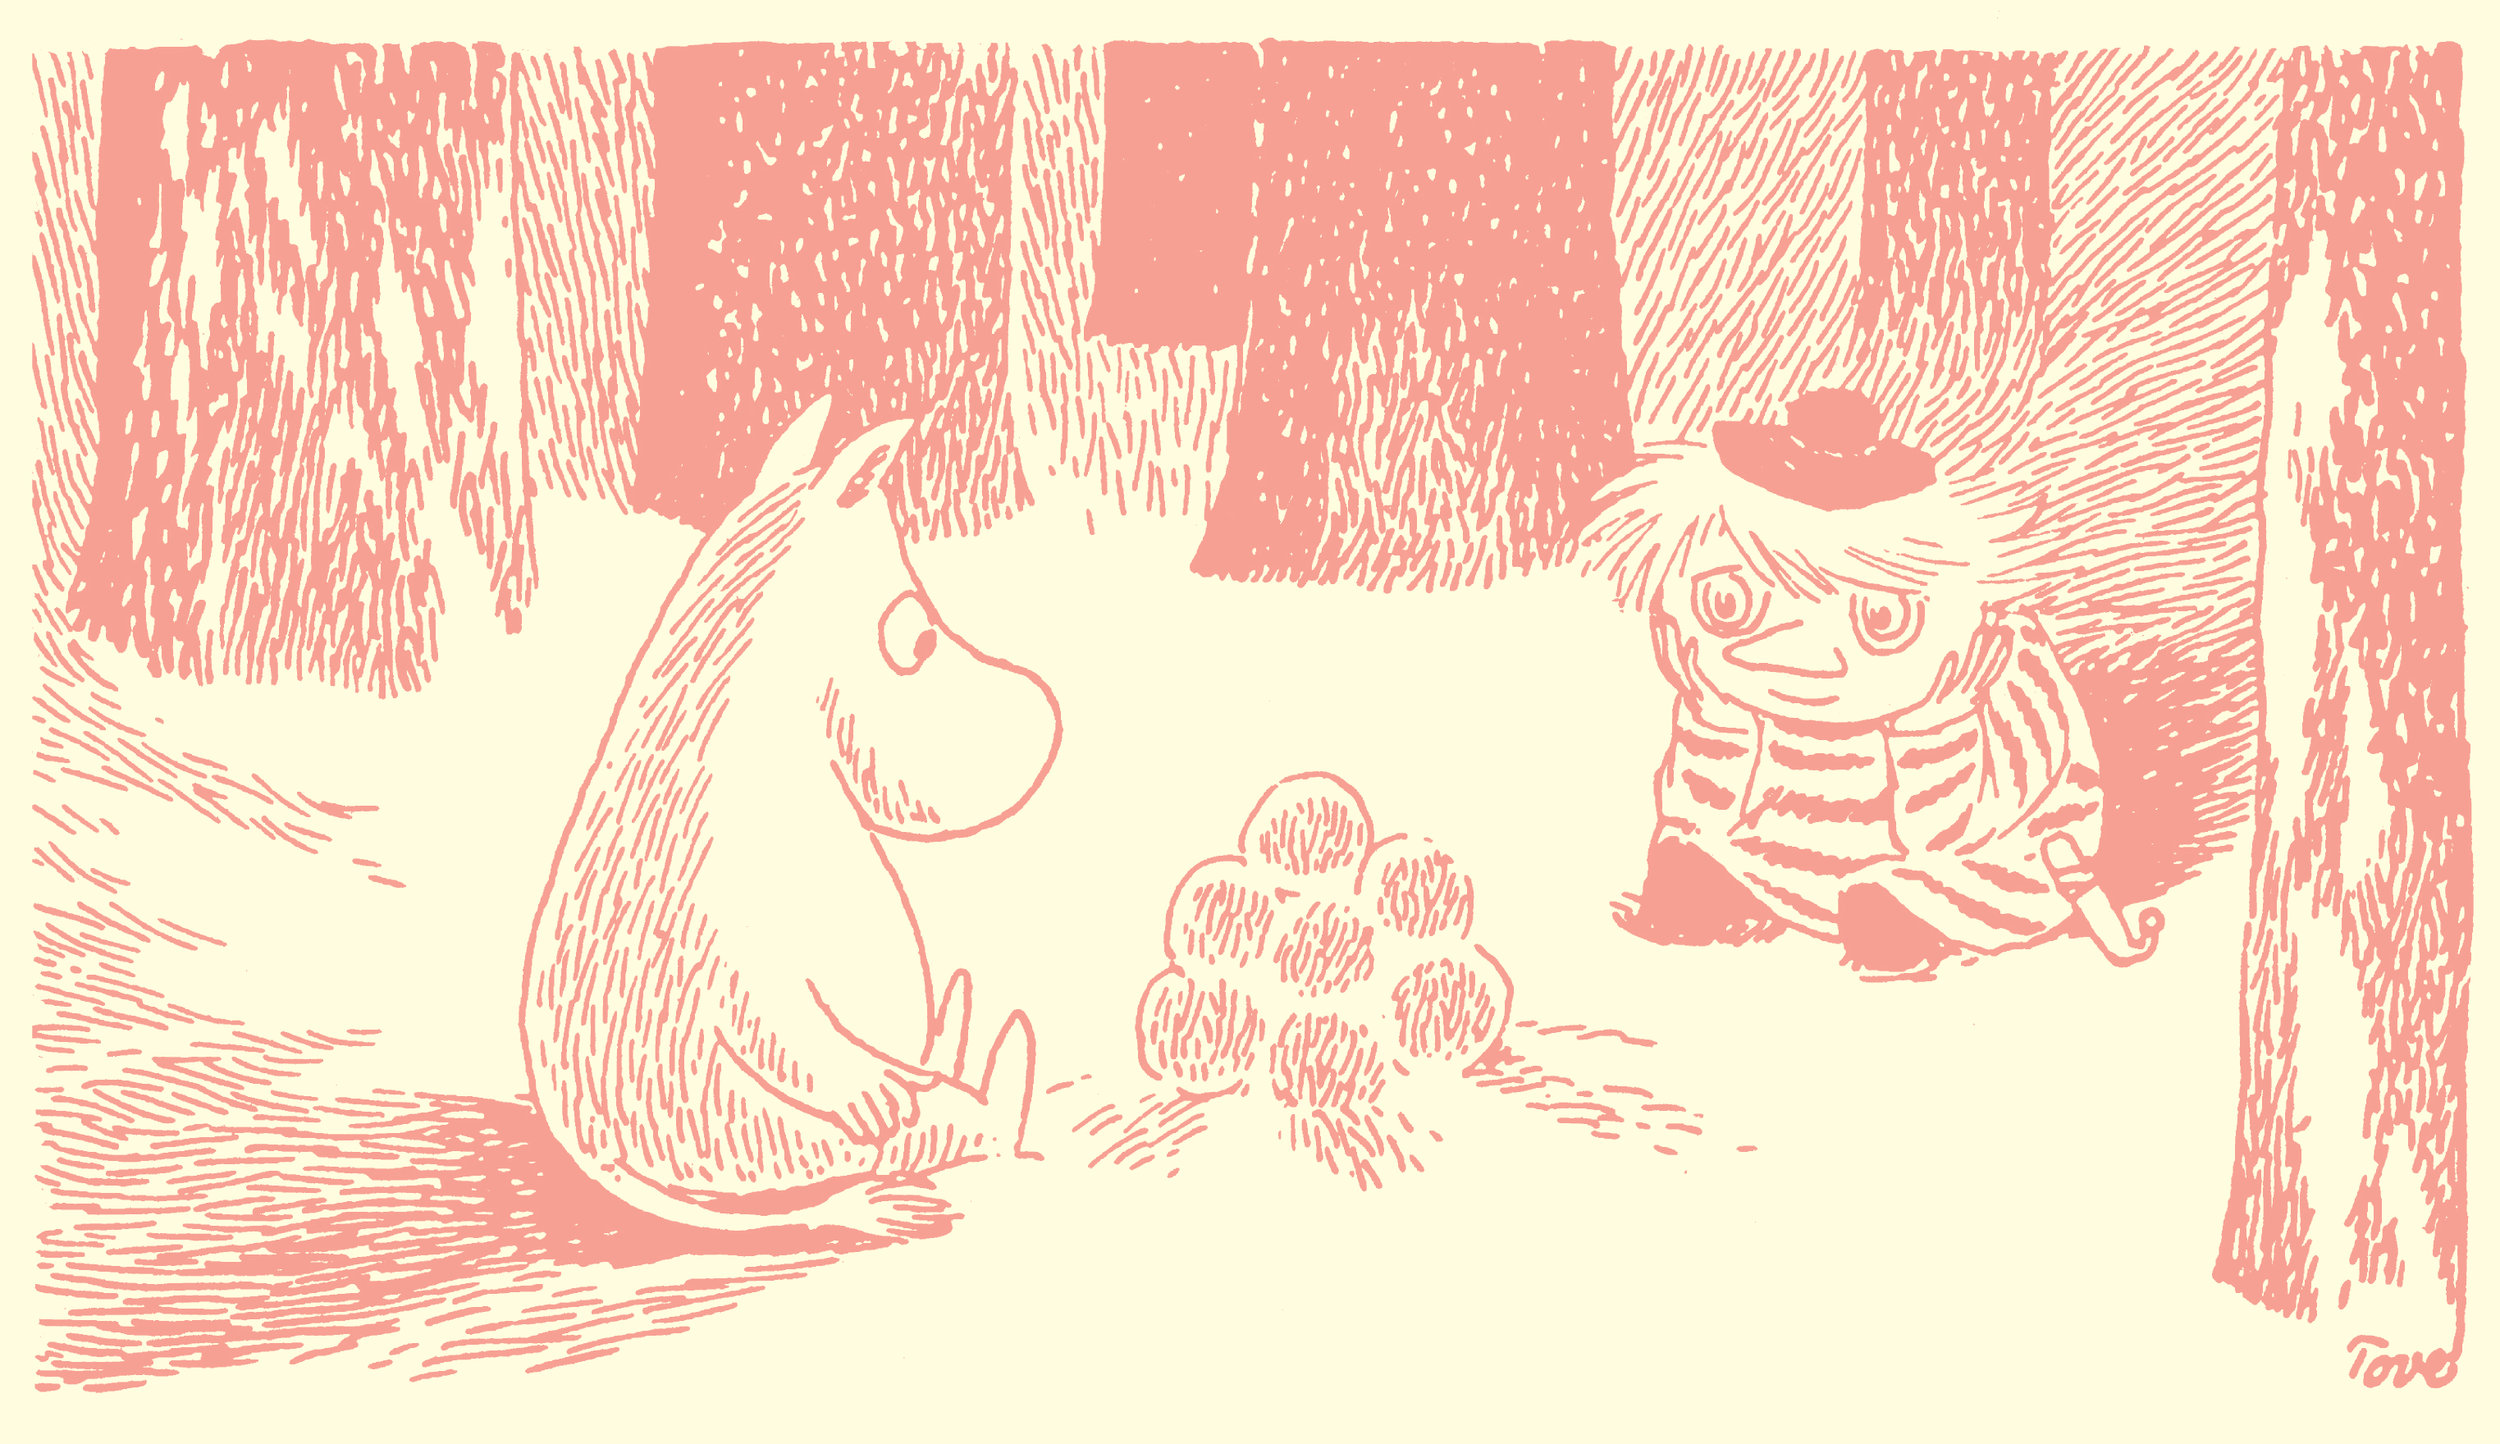 Moomin-Family-Midwinter-Endpapers.jpg